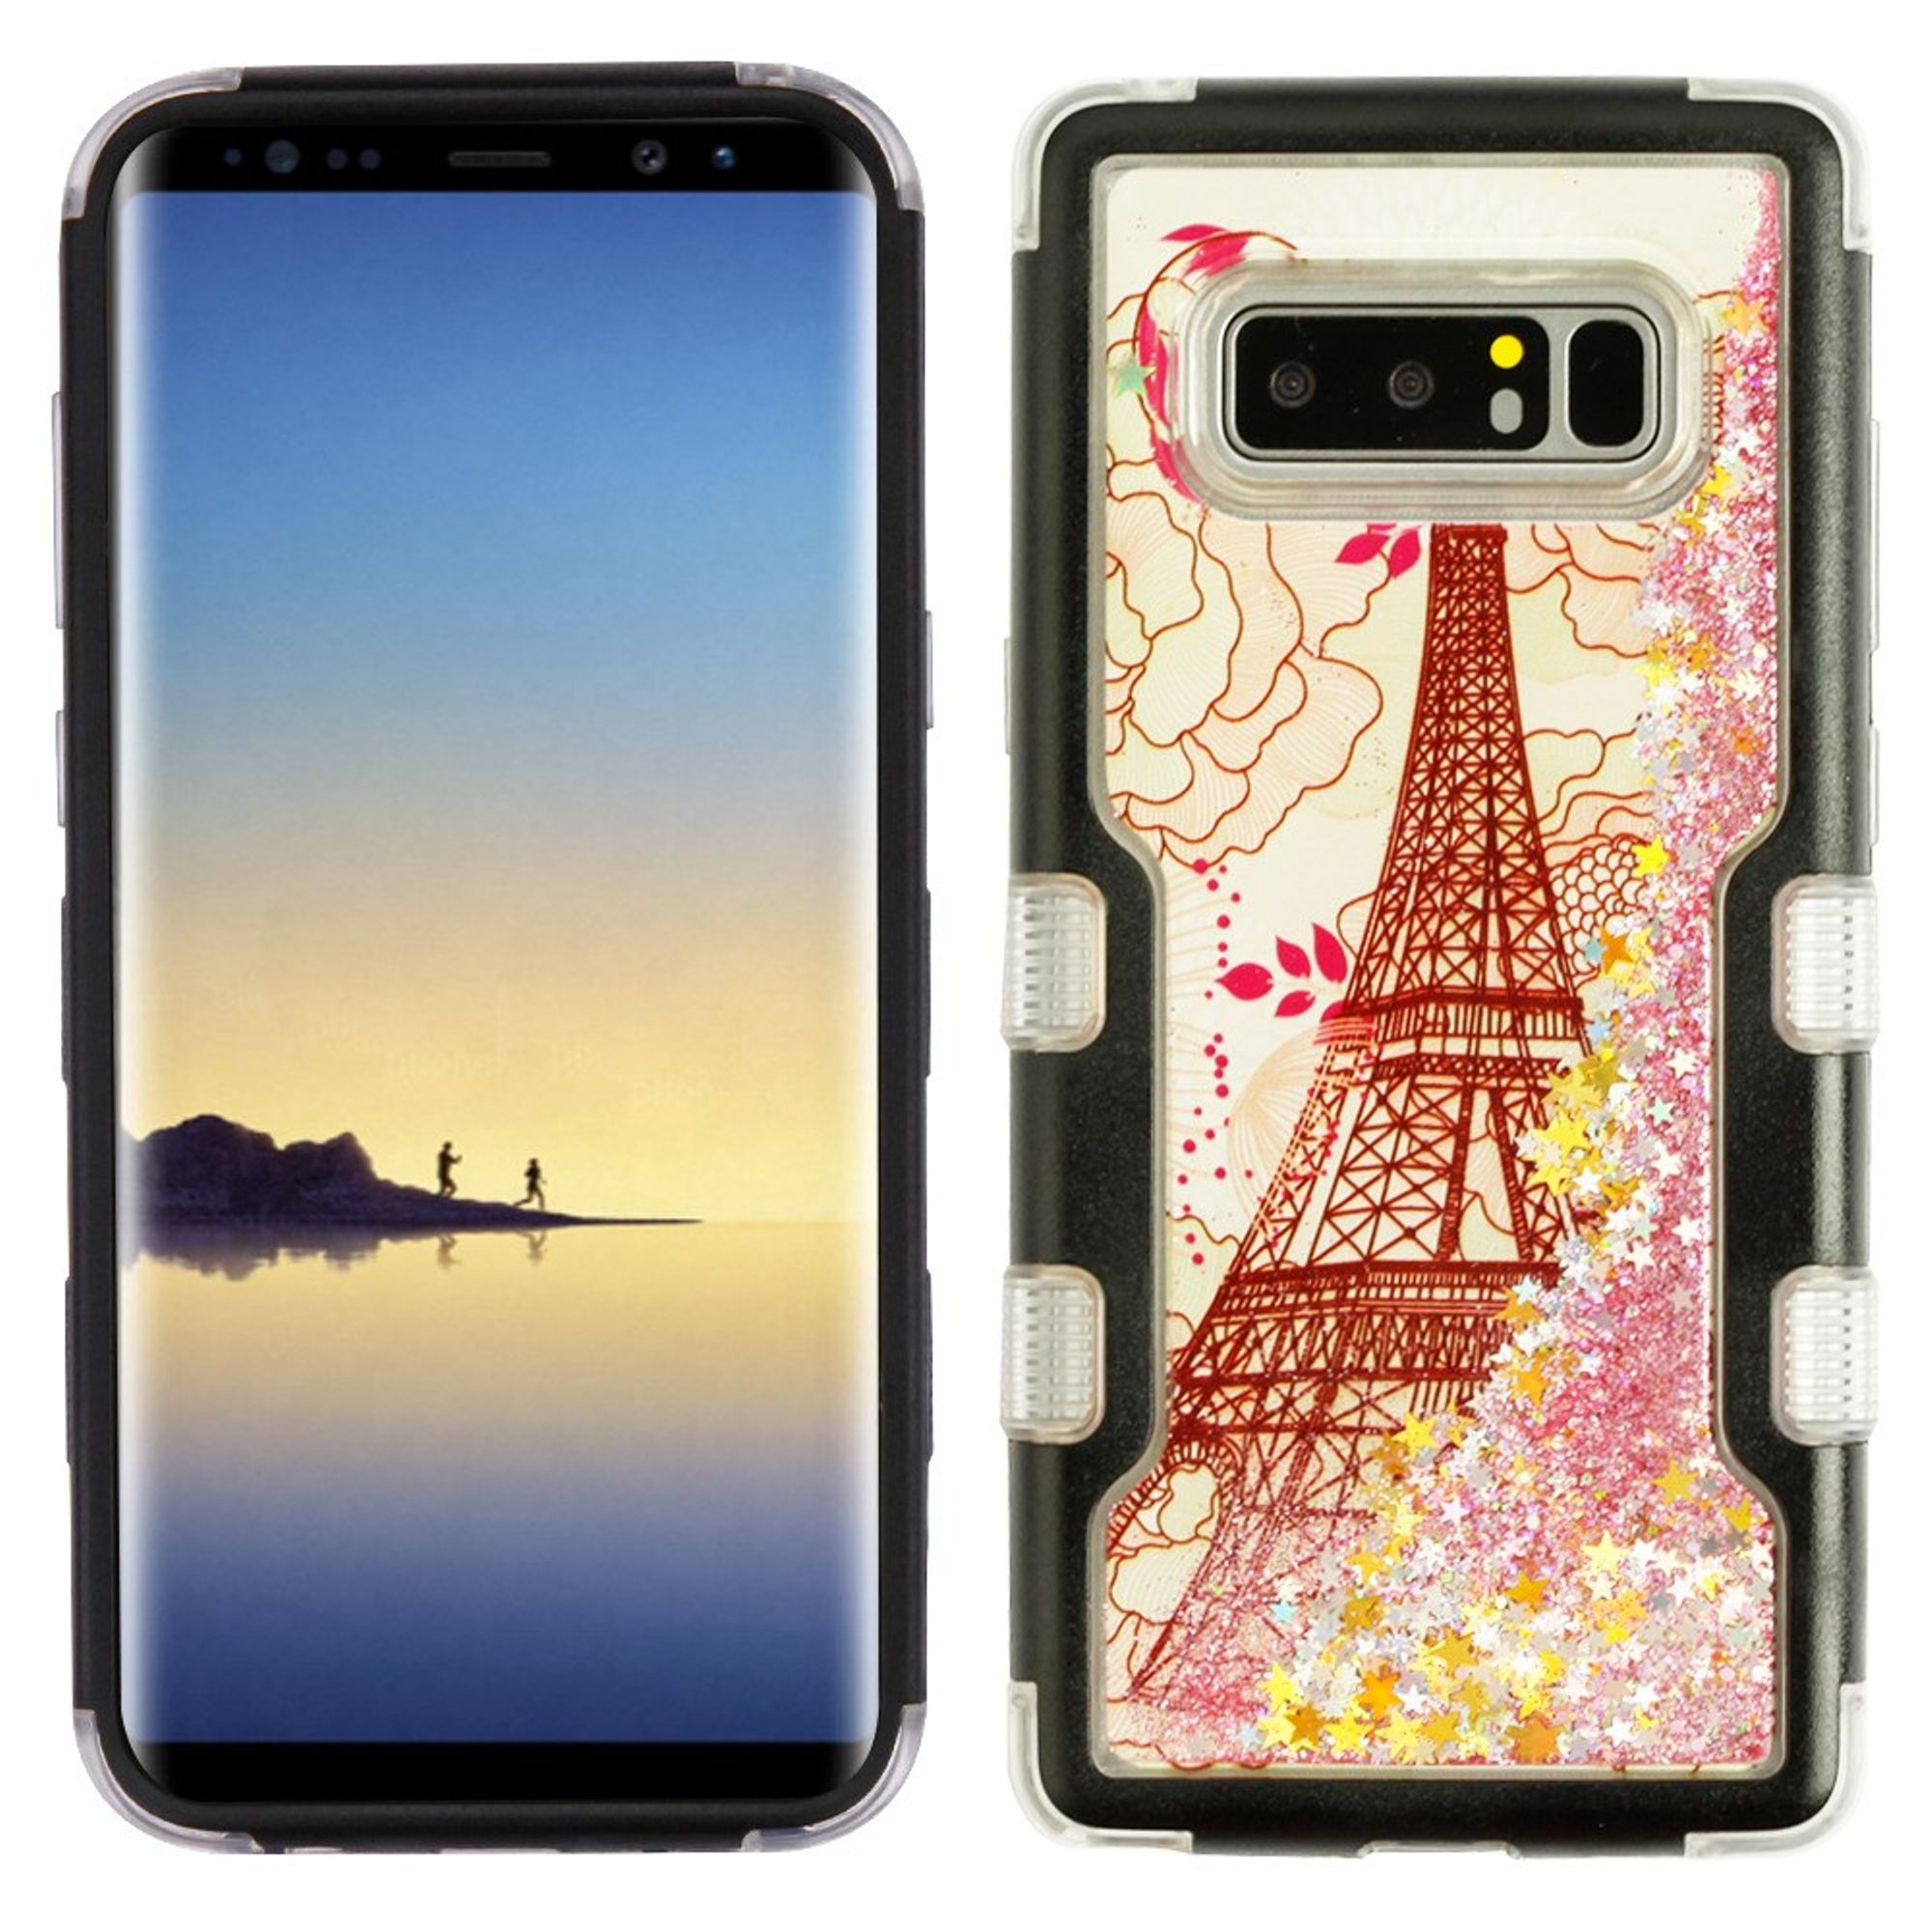 MyBat Quicksand Eiffel Tower Dual Layer [Shock Absorbing] Hybrid Hard Plastic/Soft TPU Rubber Case Cover For Samsung Galaxy Note 8, Teal